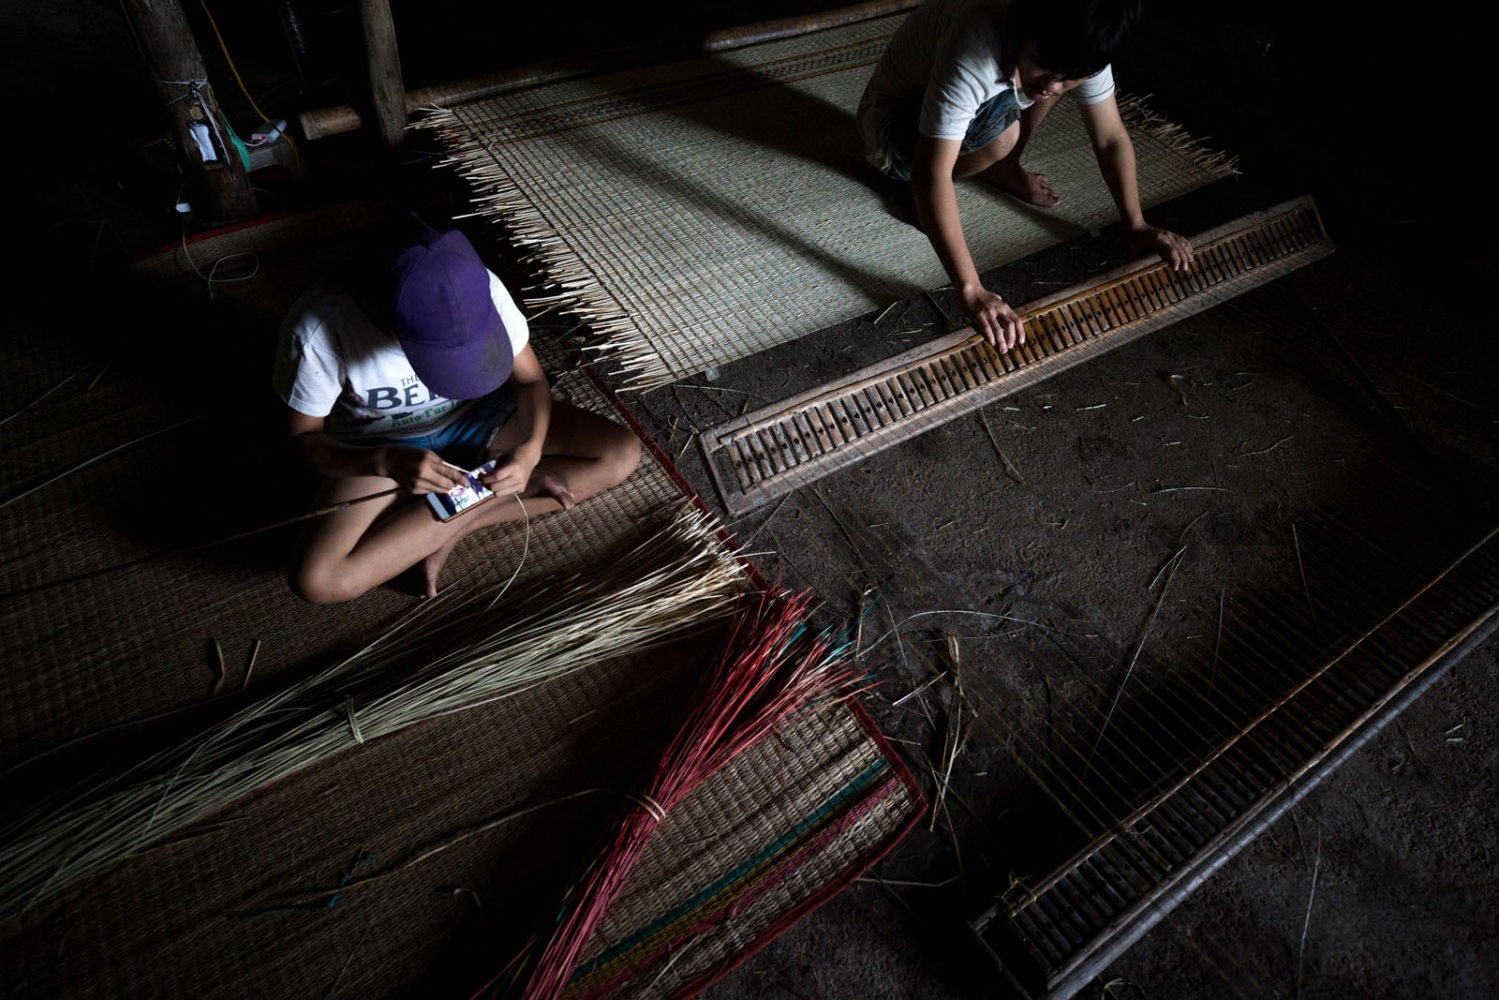 Inside the house of Nguyen Tuyet Khanh, her two children weave dried reeds in to mats. Reed weaving is a traditional skill passed by Vietnamese women from generation to generation. Dr Ni's strategy is to help farmers find solutions themselves, adapting to the changing environment using what they already know. He believes that the collaboration between researchers and farmers is vital to provide long-term solutions.